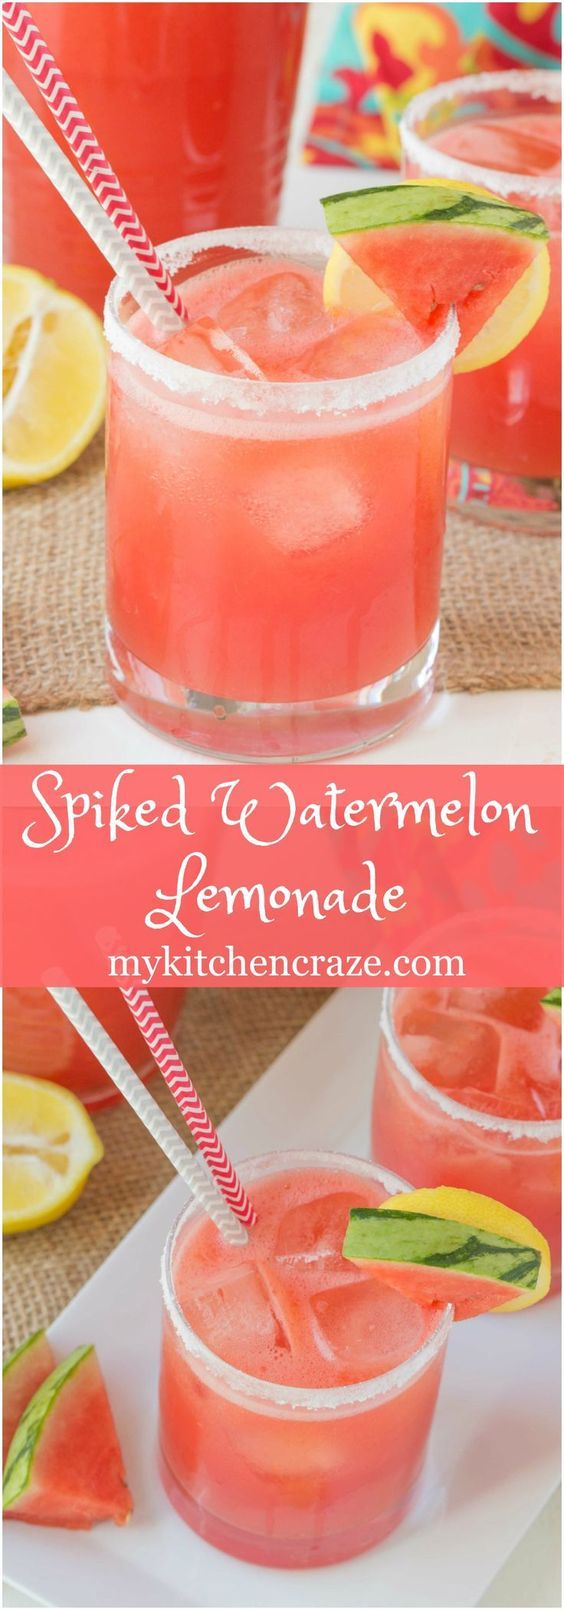 Spiked Watermelon Lemonade ~ mykitchencraze.com ~ This drink is a delicious blend of watermelon, frozen lemonade and vodka. This is one adult drink you won't want to pass up this summer!